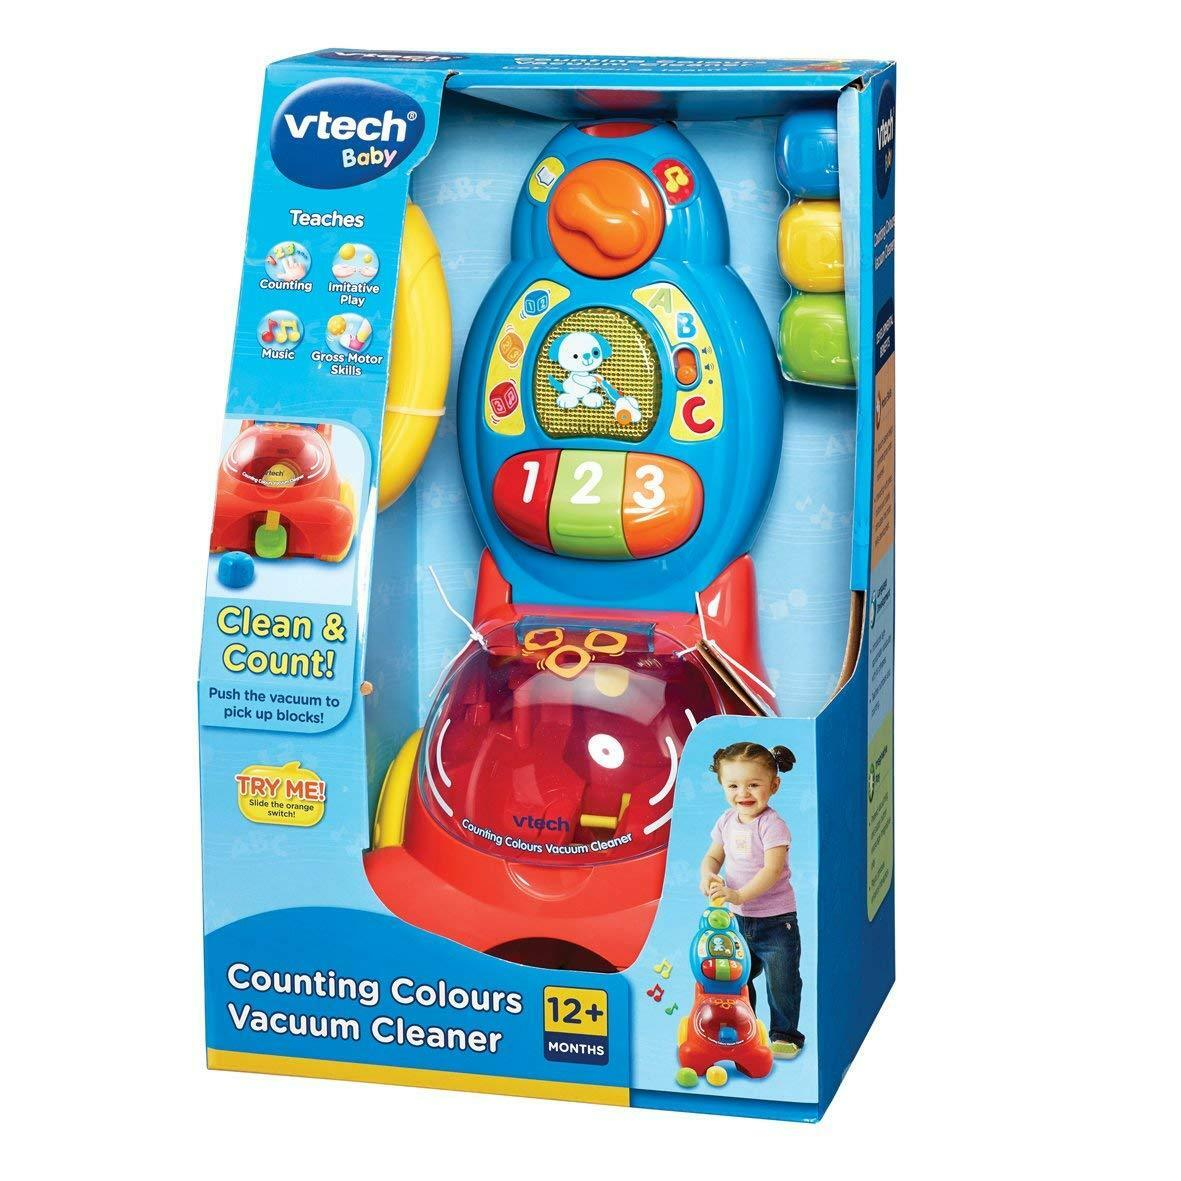 VTech Baby Counting Colours Vacuum Cleaner Hoover Kids Music Sounds Toy - Age 1+